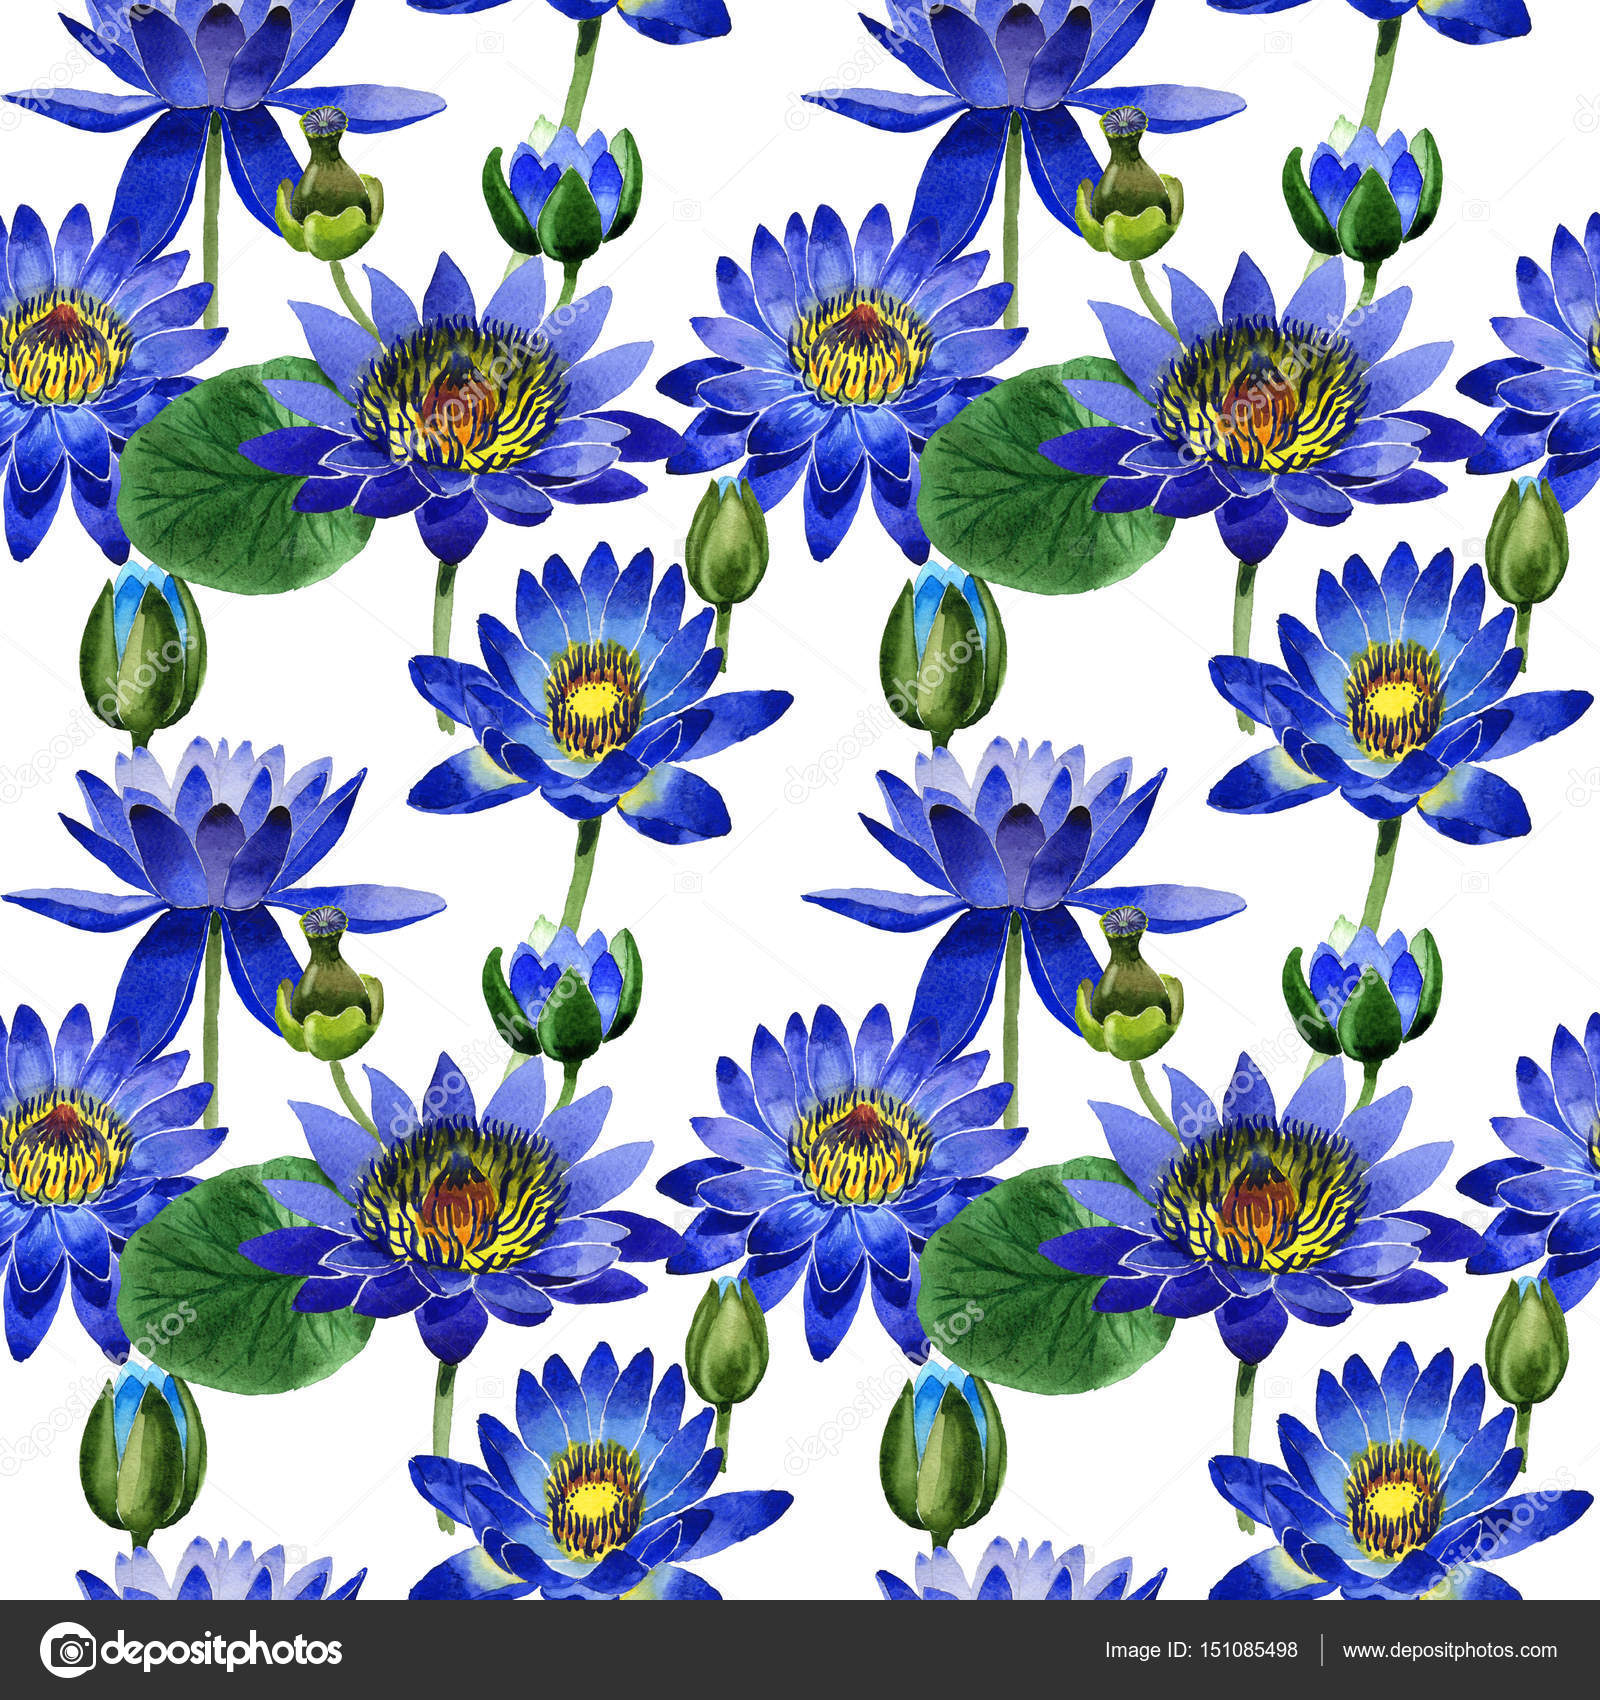 Wildflower Blue Lotus Flower Pattern In A Watercolor Style Isolated